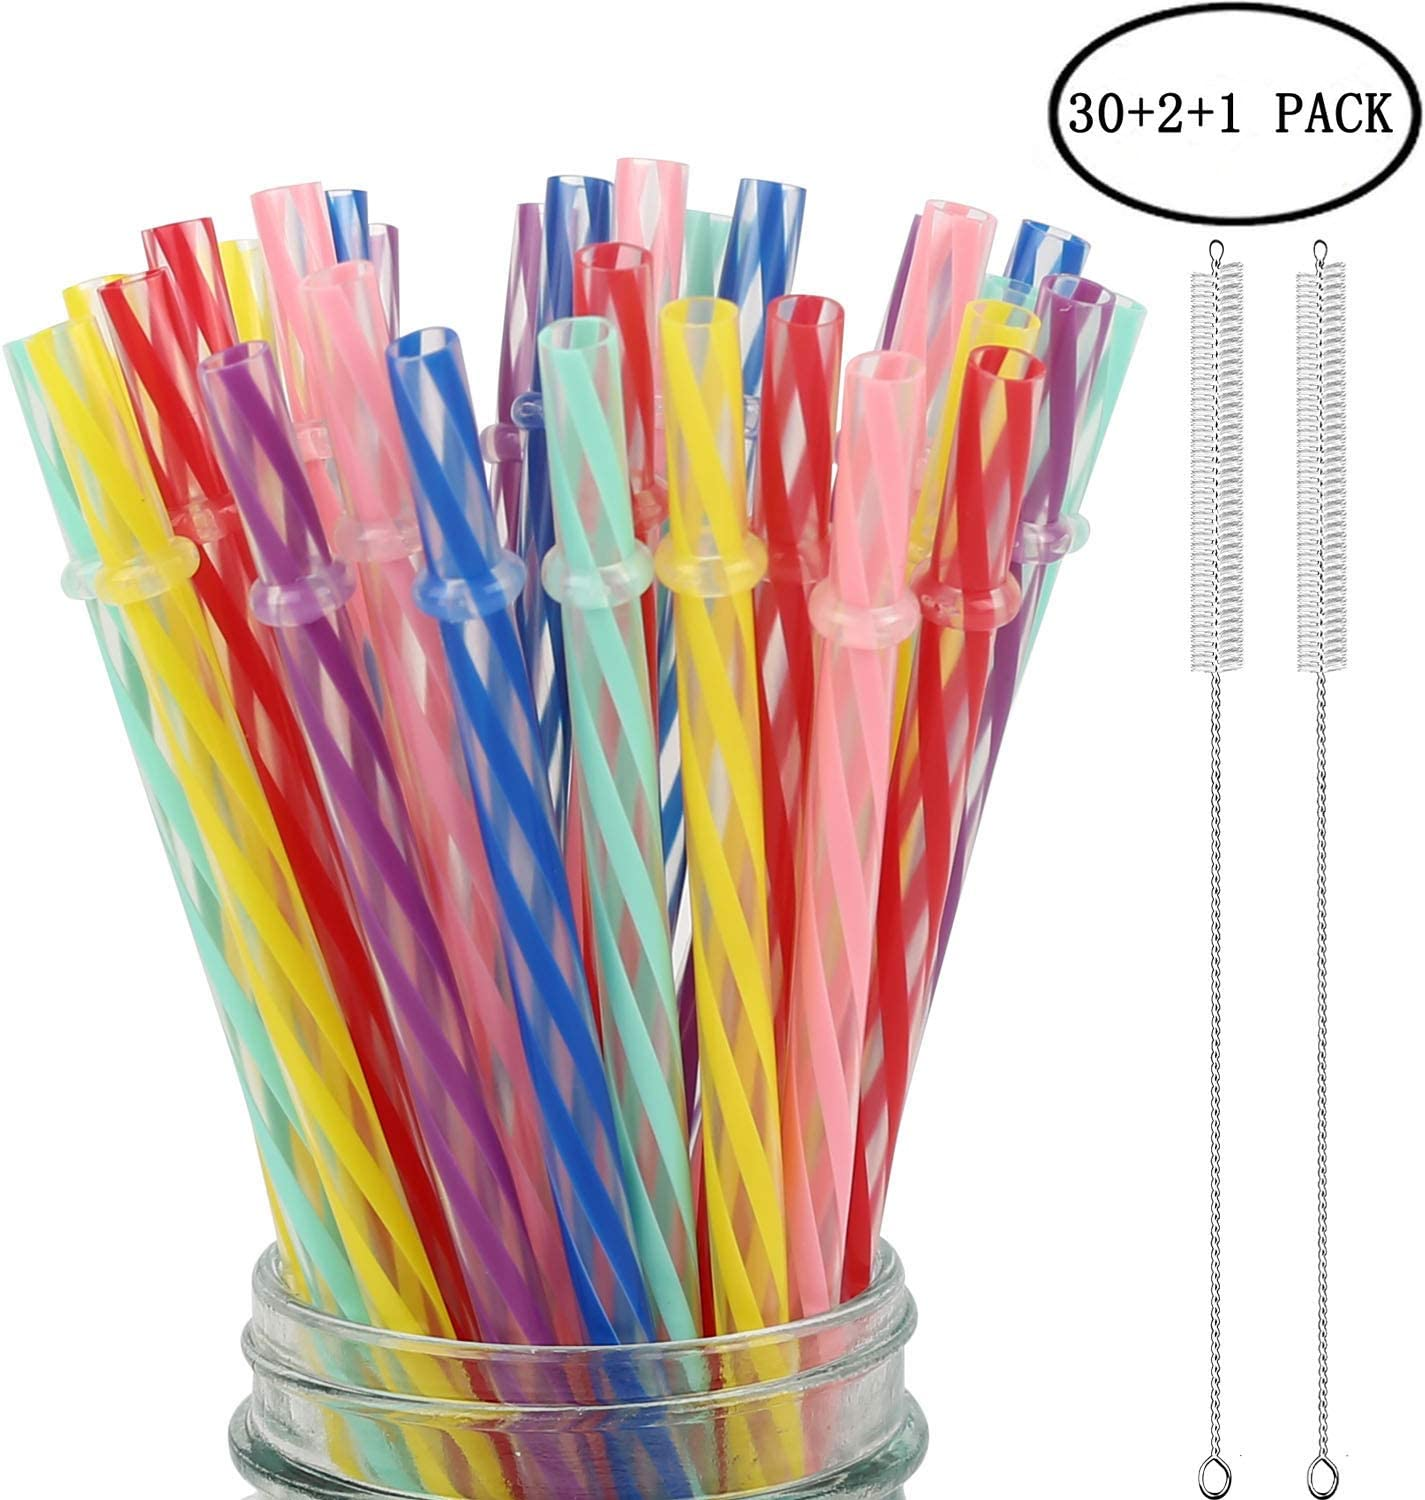 33 Pieces Reusable Plastic Straws Fit for Mason Jars, Tumblers, 9 Inches Transparent Colored Unbreakable Drinking Straws with 1 Straw Carrying Case and 2 Cleaning Brushes, BPA Free and Eco-friendly